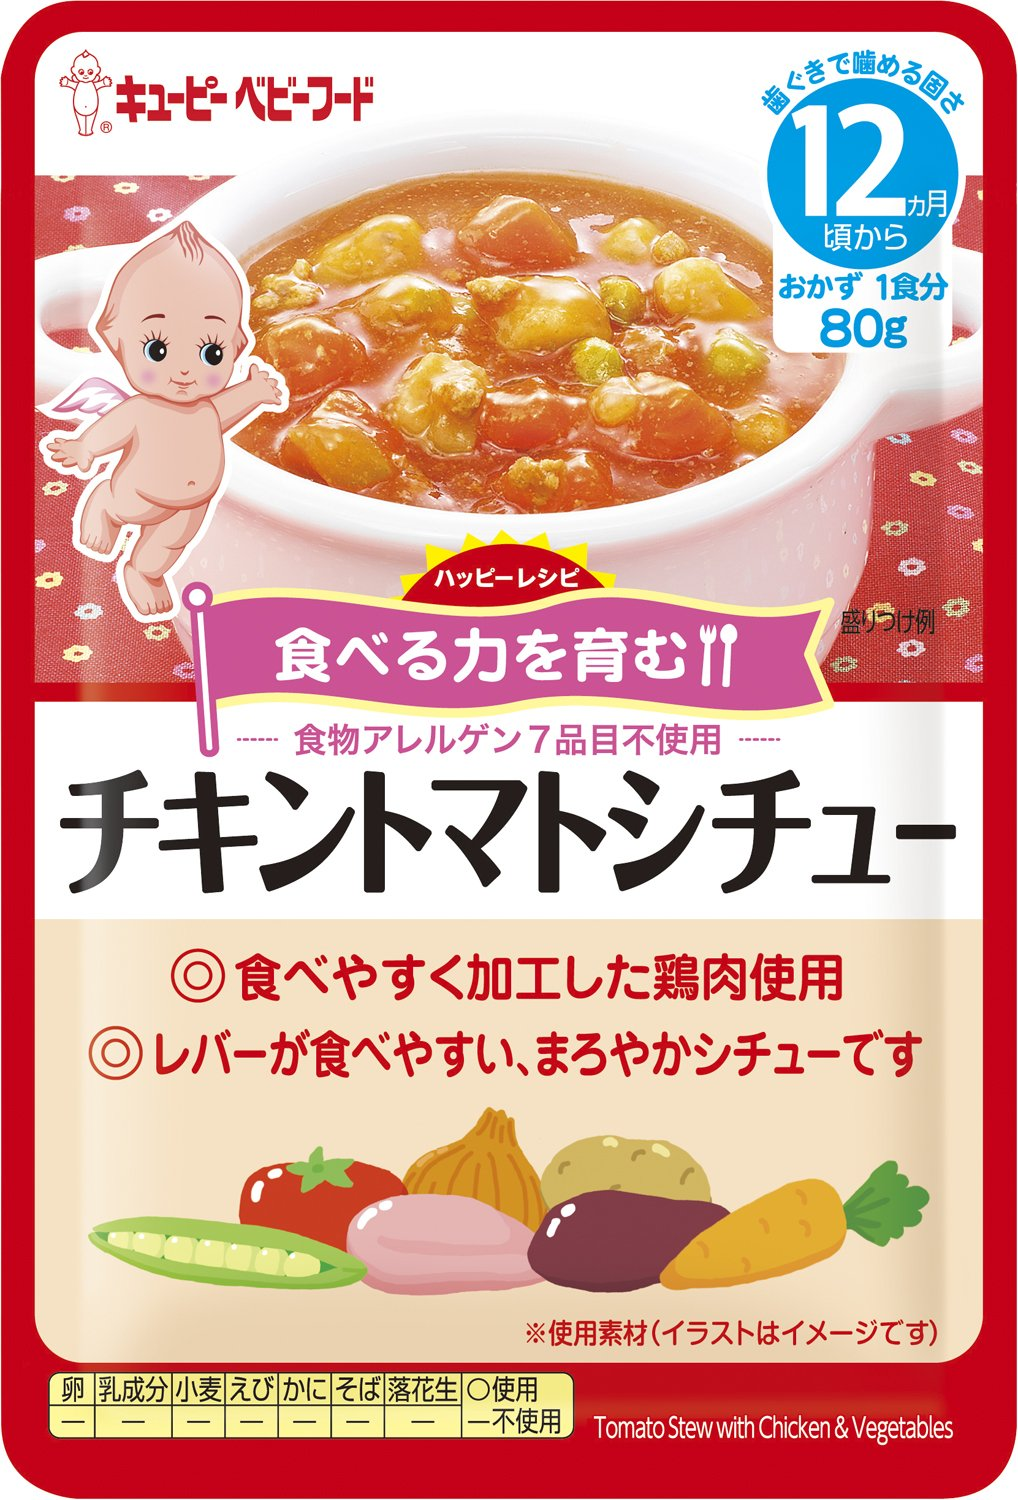 12 × from Kewpie Baby Food Happy Recipe Chicken Tomato stew Months Around May